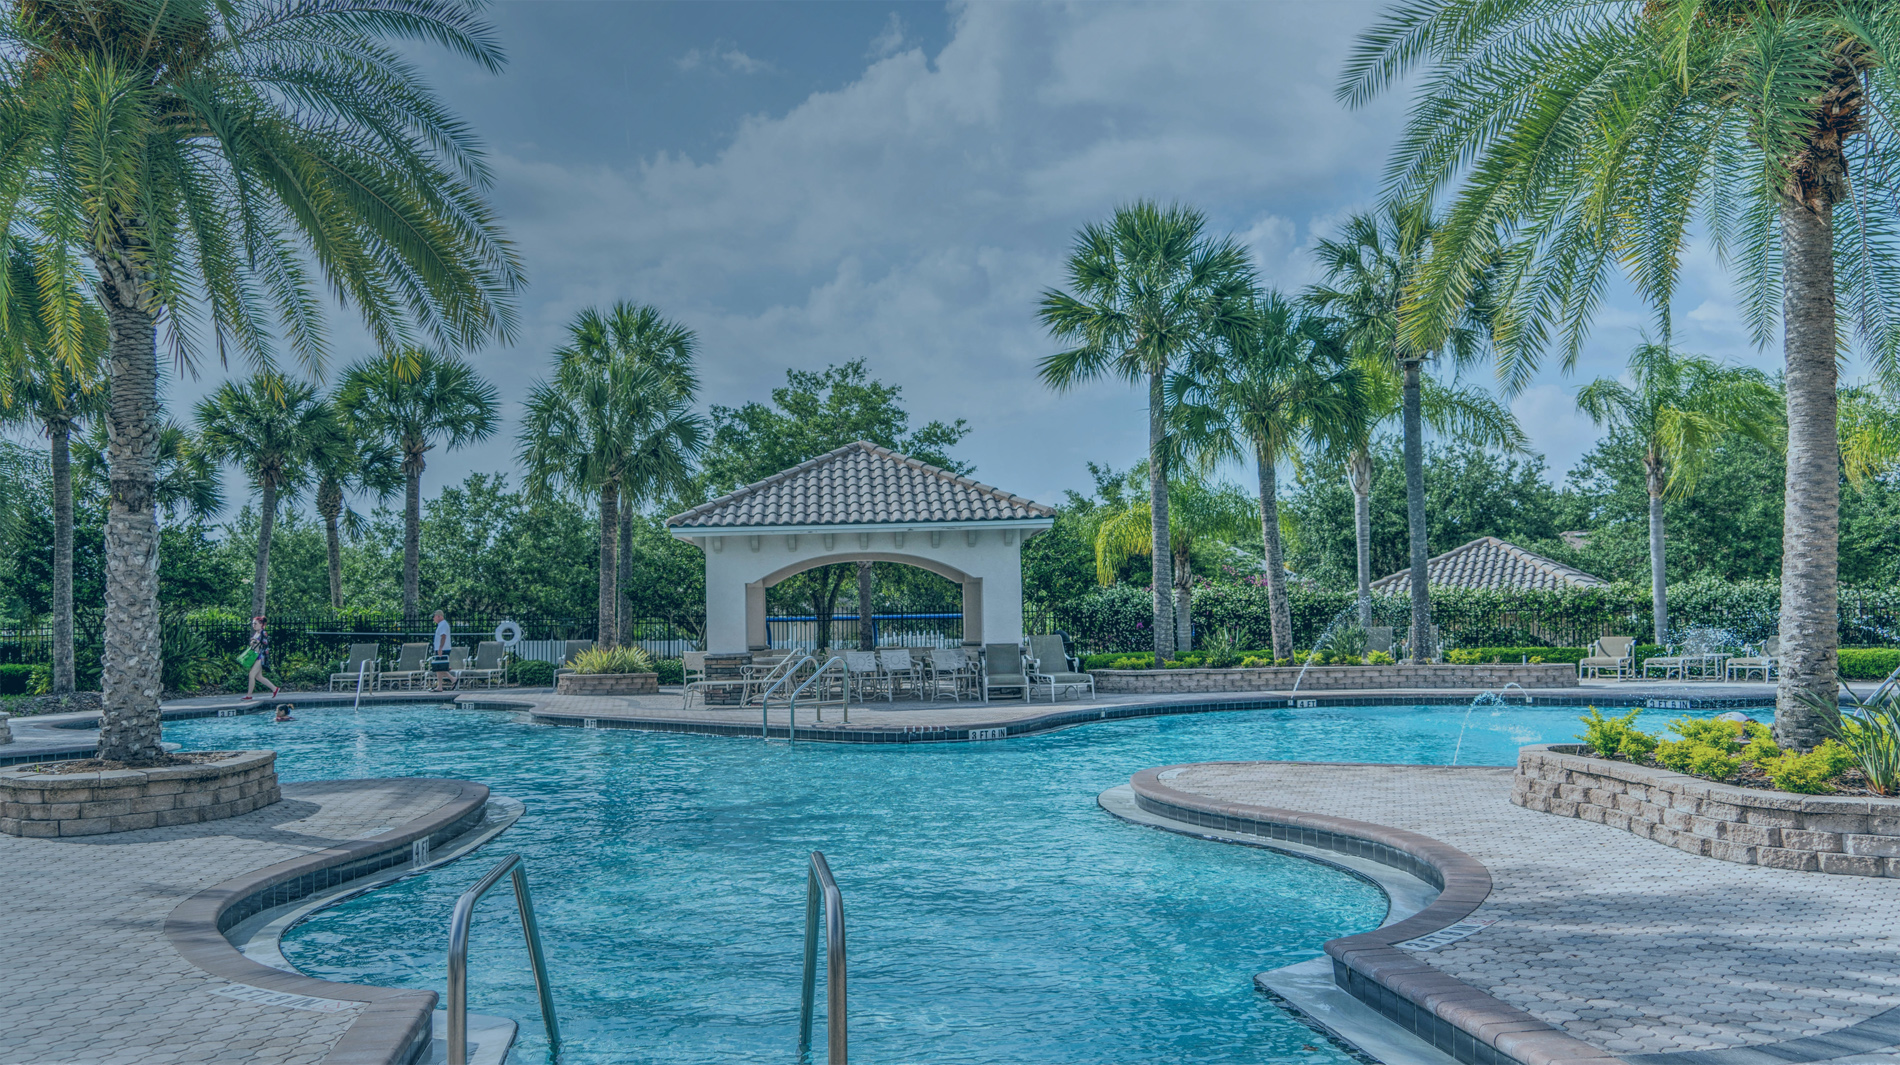 Best pool maintenance Service